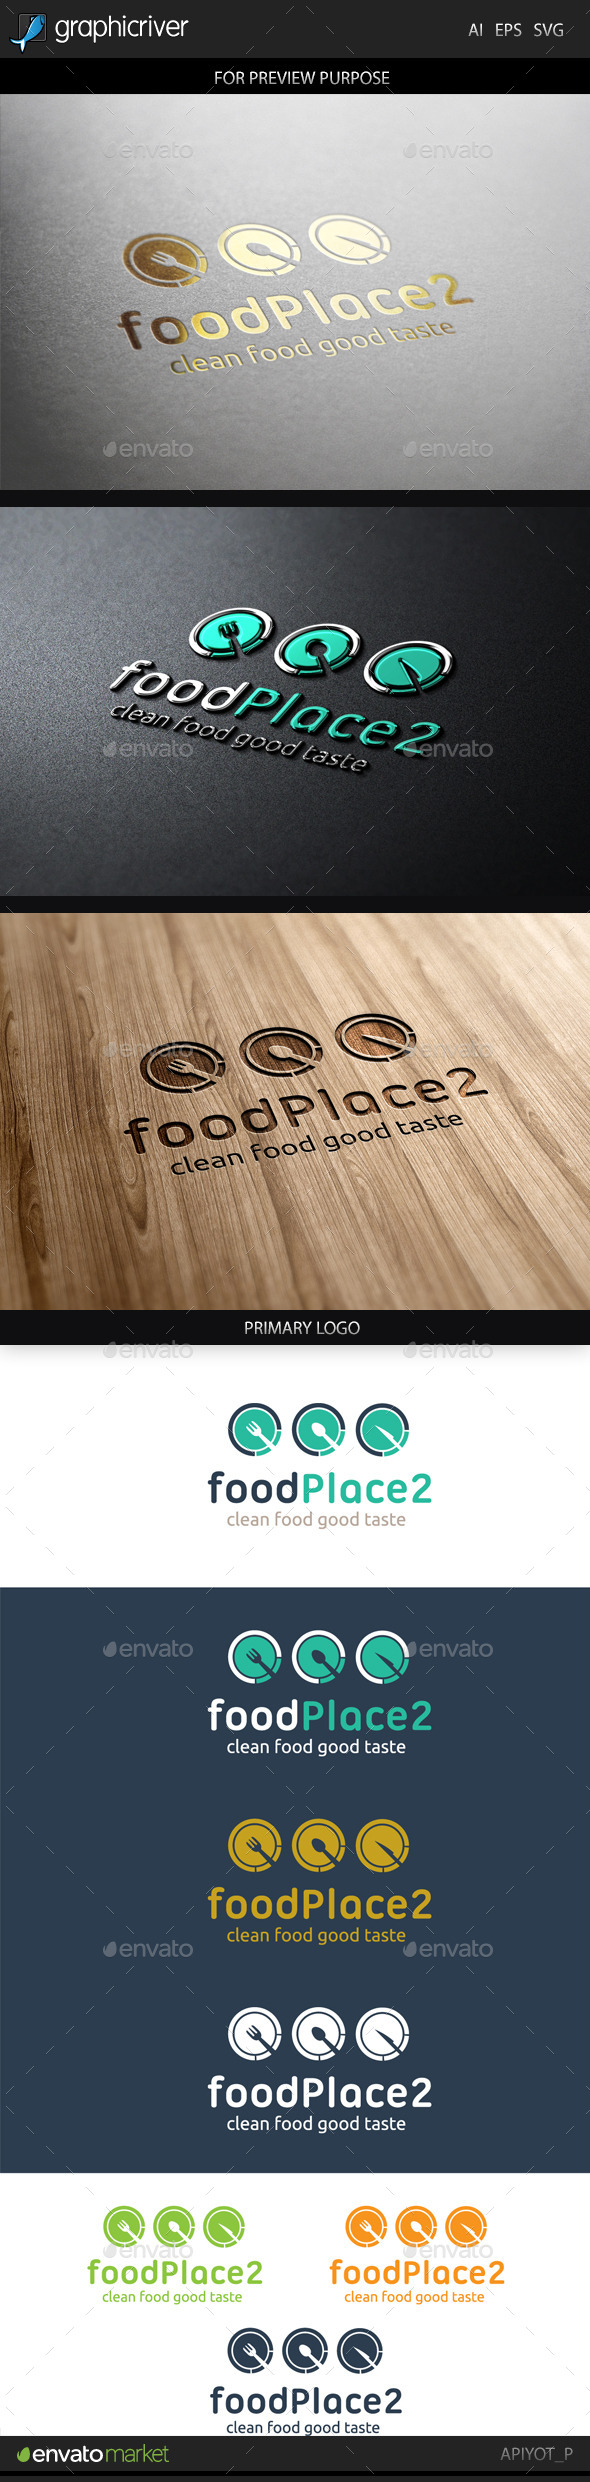 Food Place 2 Logo